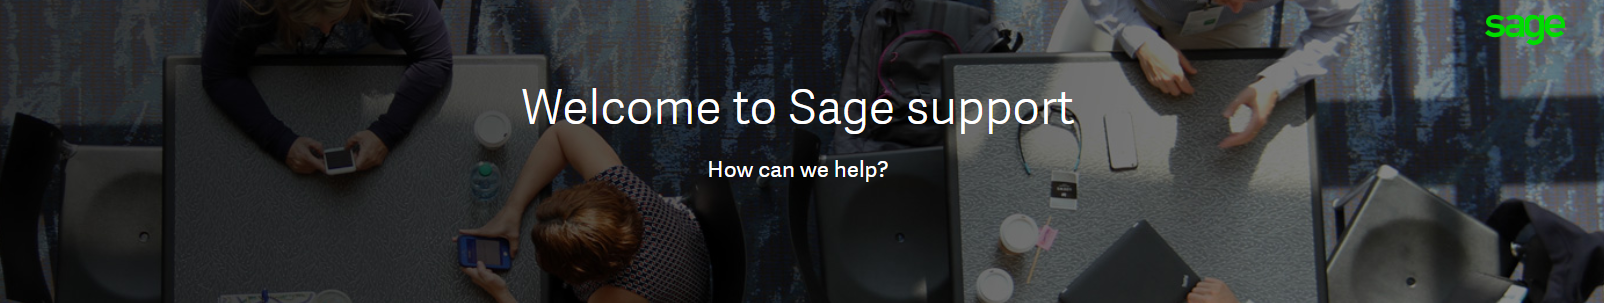 Welcome to Sage support